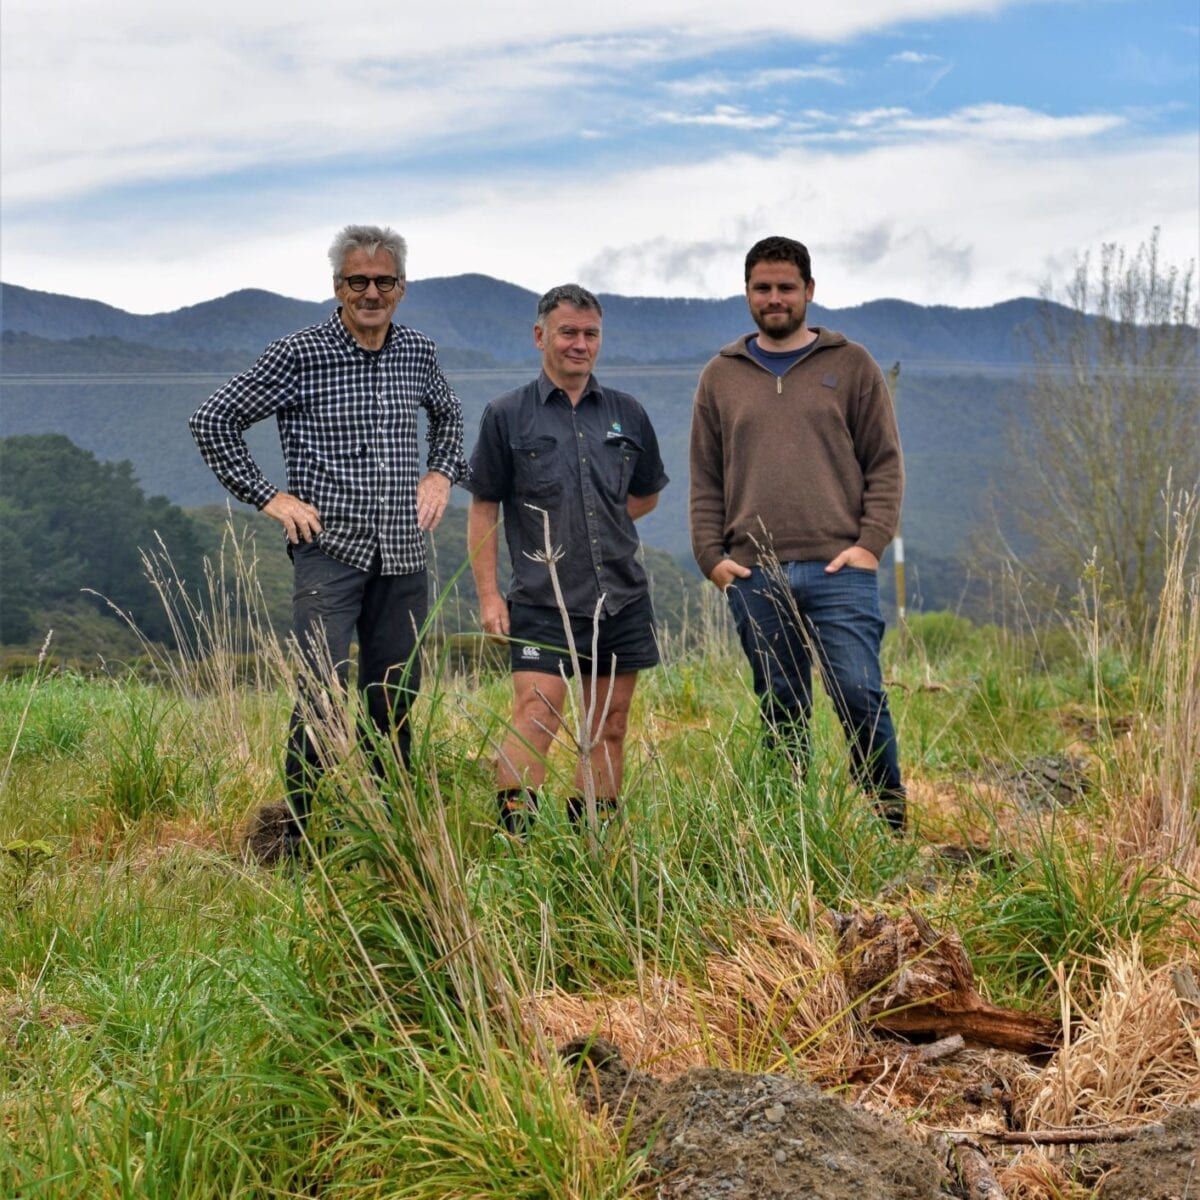 Clive Paton (Aorangi Restoration Trust Chair), Trevor Thompson (QEII National Trust) and Aaron Donges (Aorangi Restoration Trust Operations Manager) at a site visit